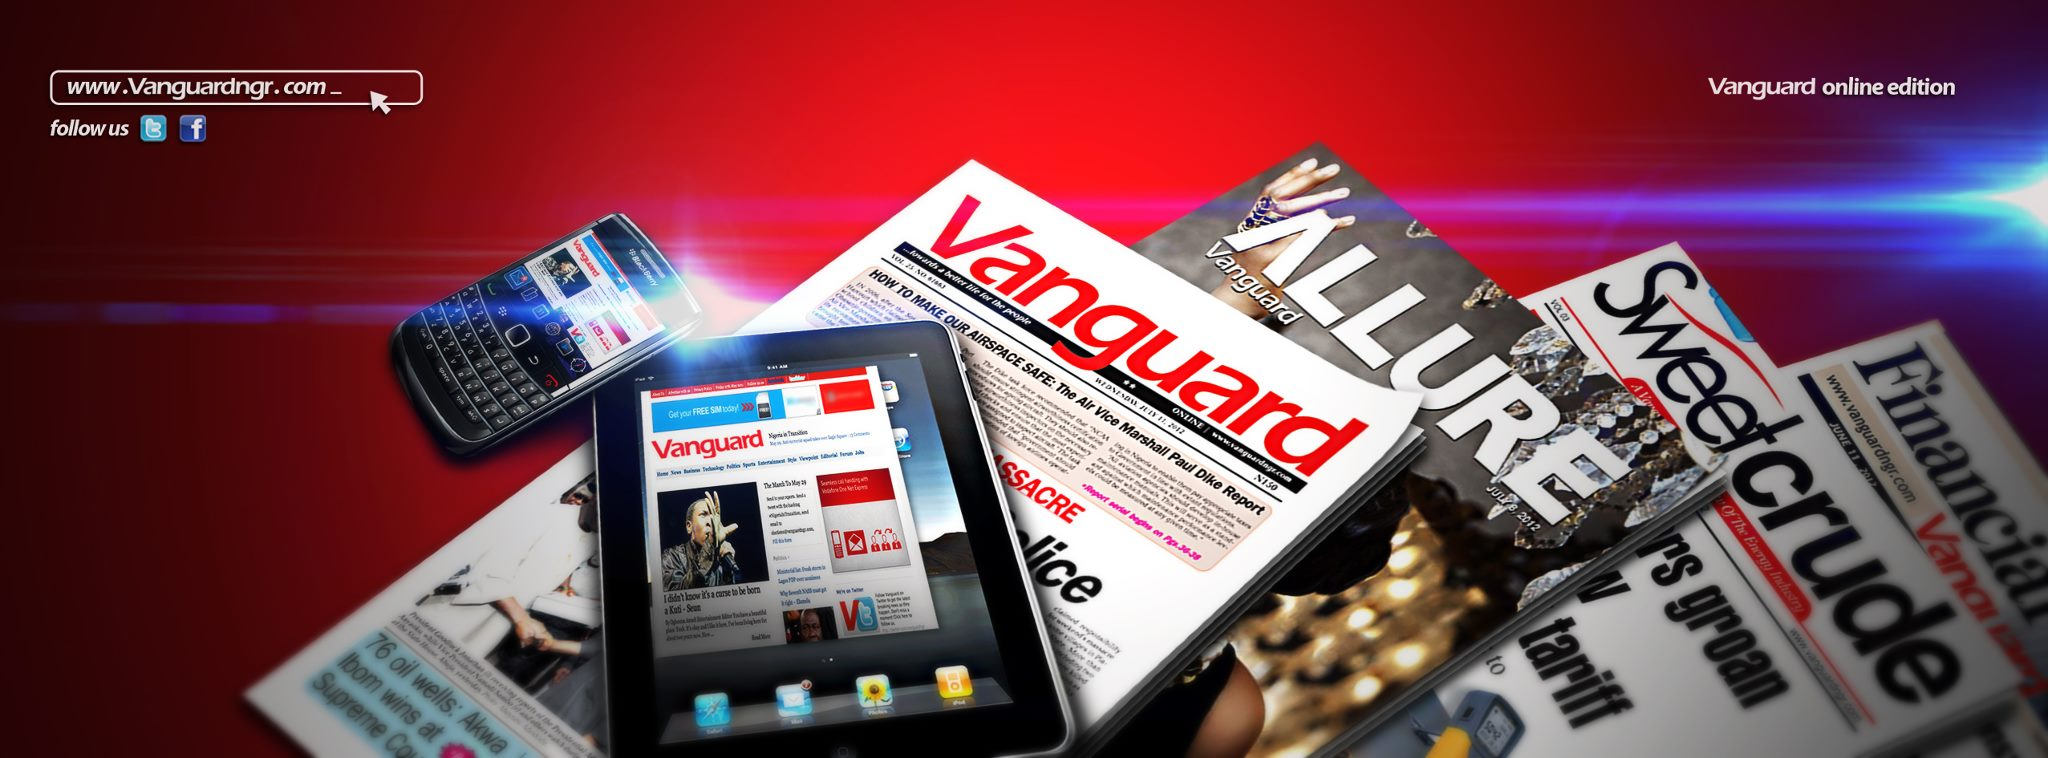 Vanguard News, Sports and Business from vanguard Newspapers -